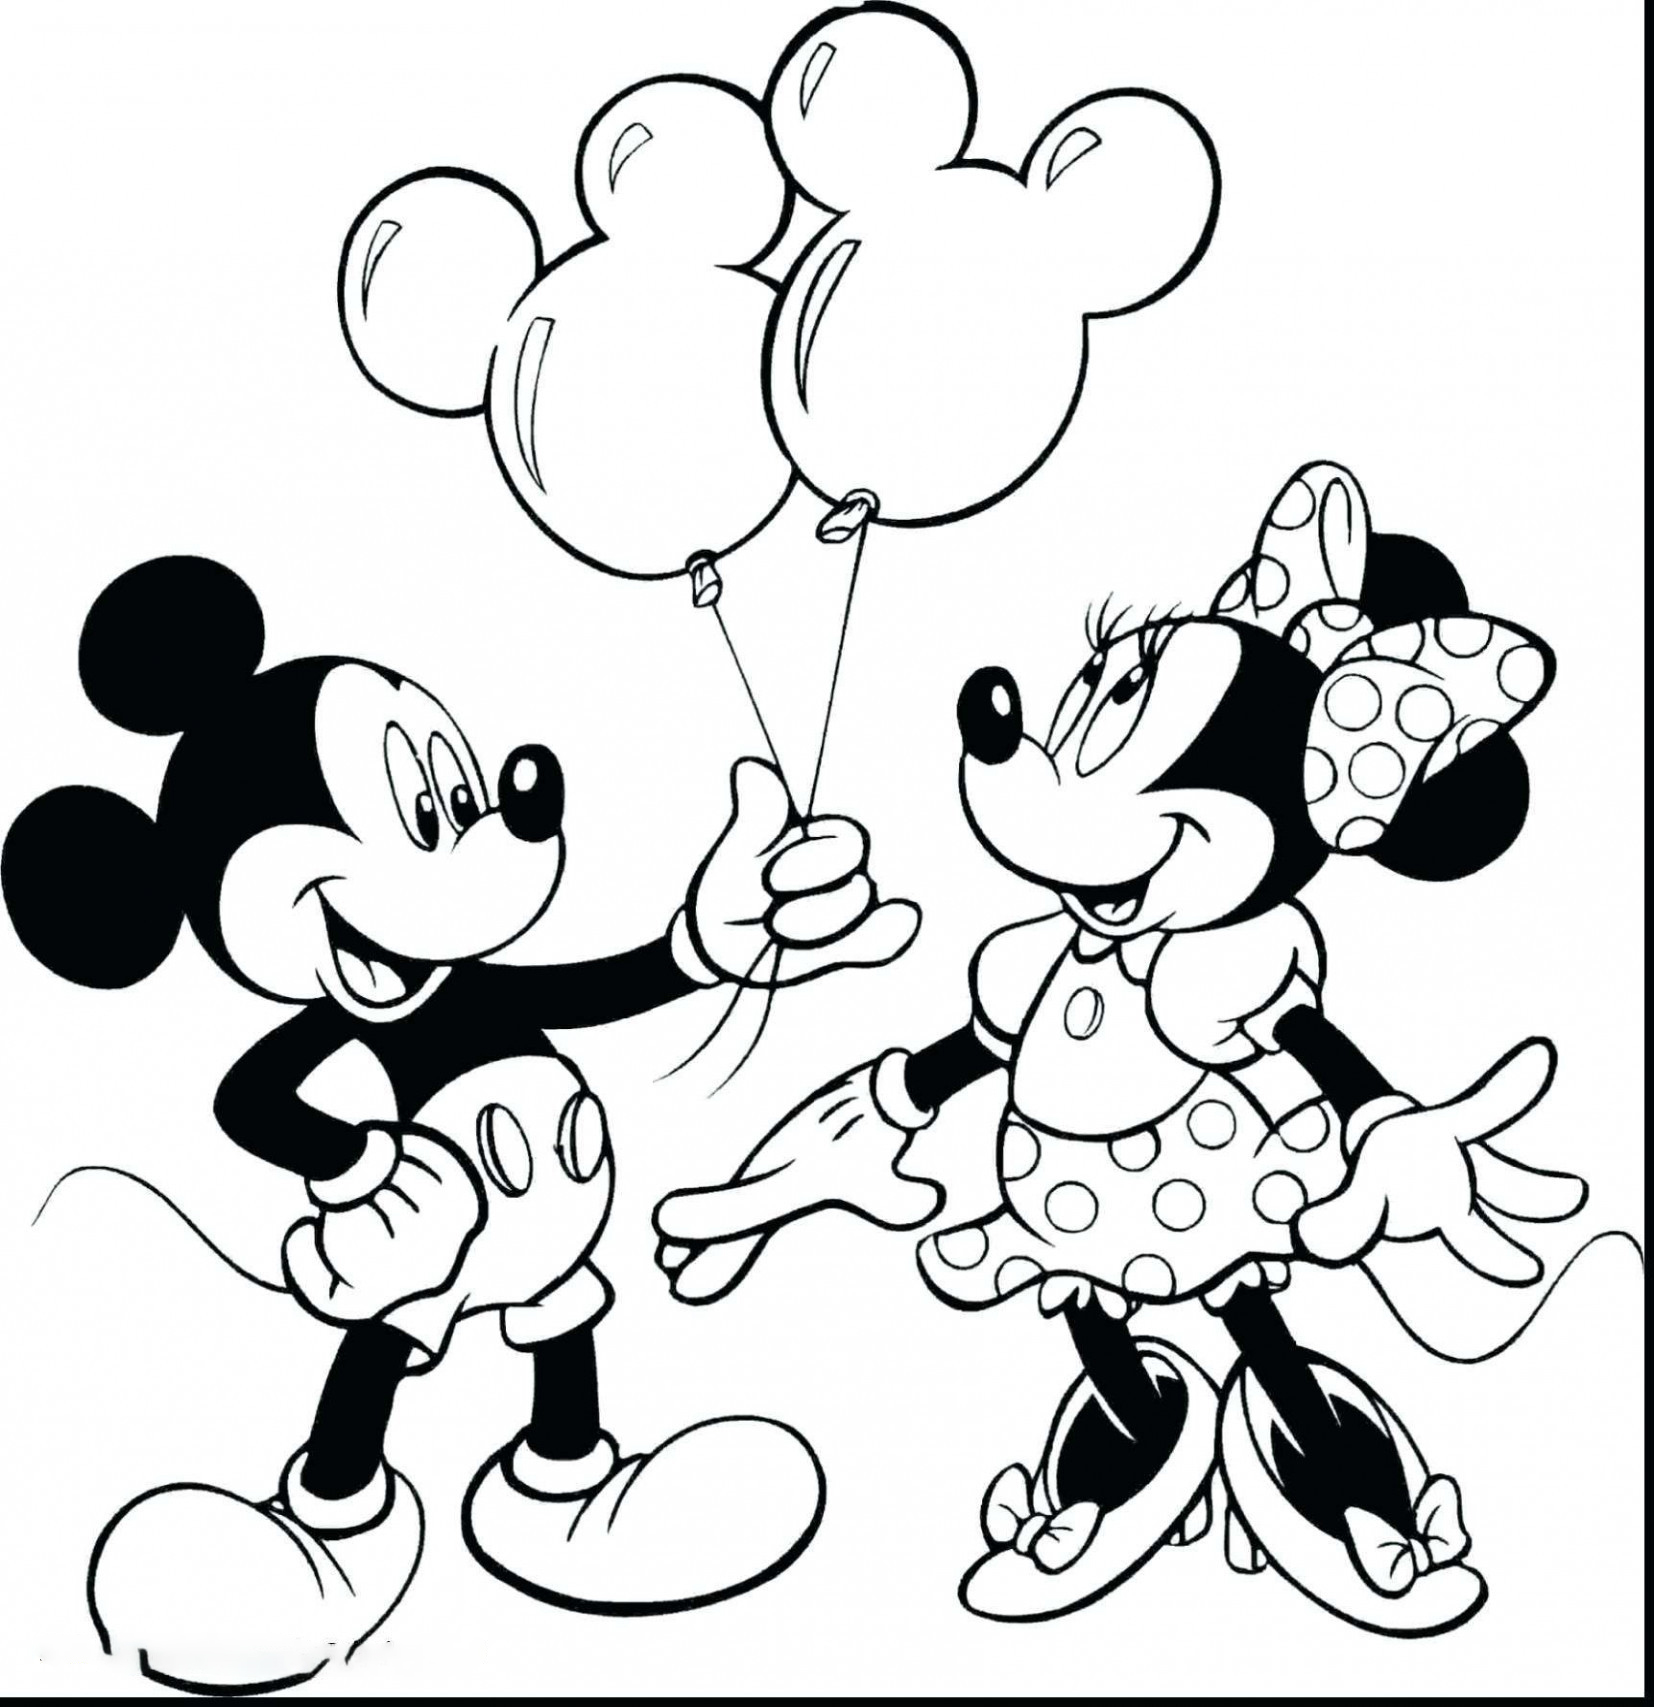 Mickey gives two balloons to Minnie